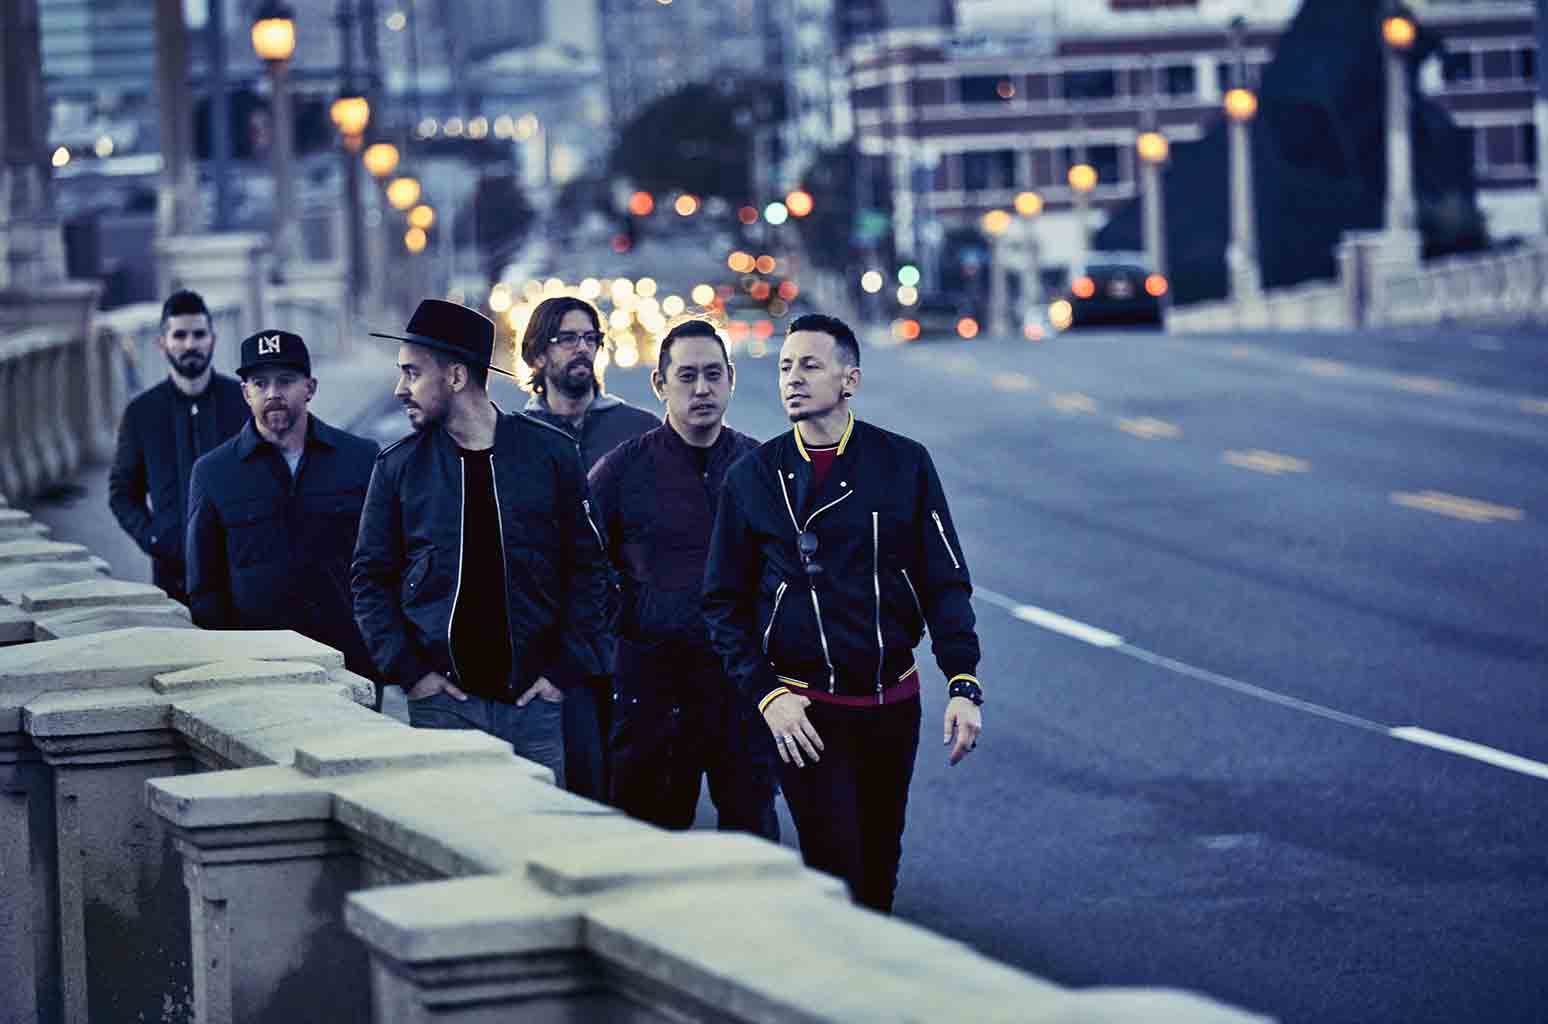 linkin-park-press-photo-credit-james-minchin-2017-billboard-1548.jpg